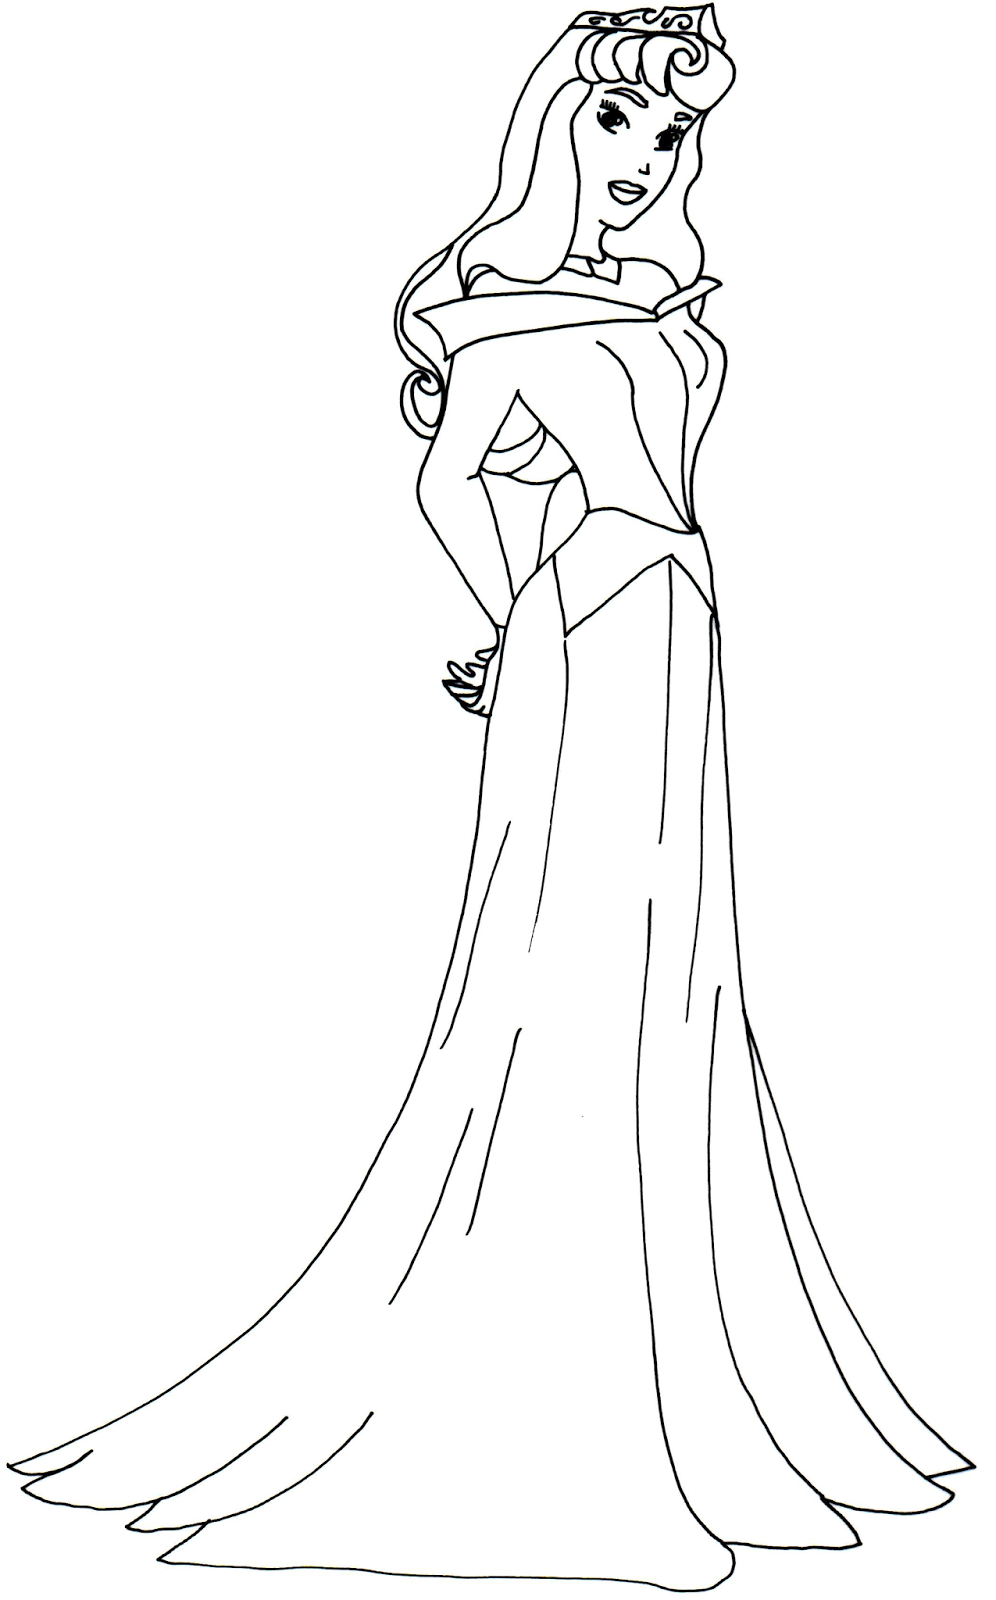 996x1600 Sofia The First Coloring Pages Princess Aurora Sofia The First